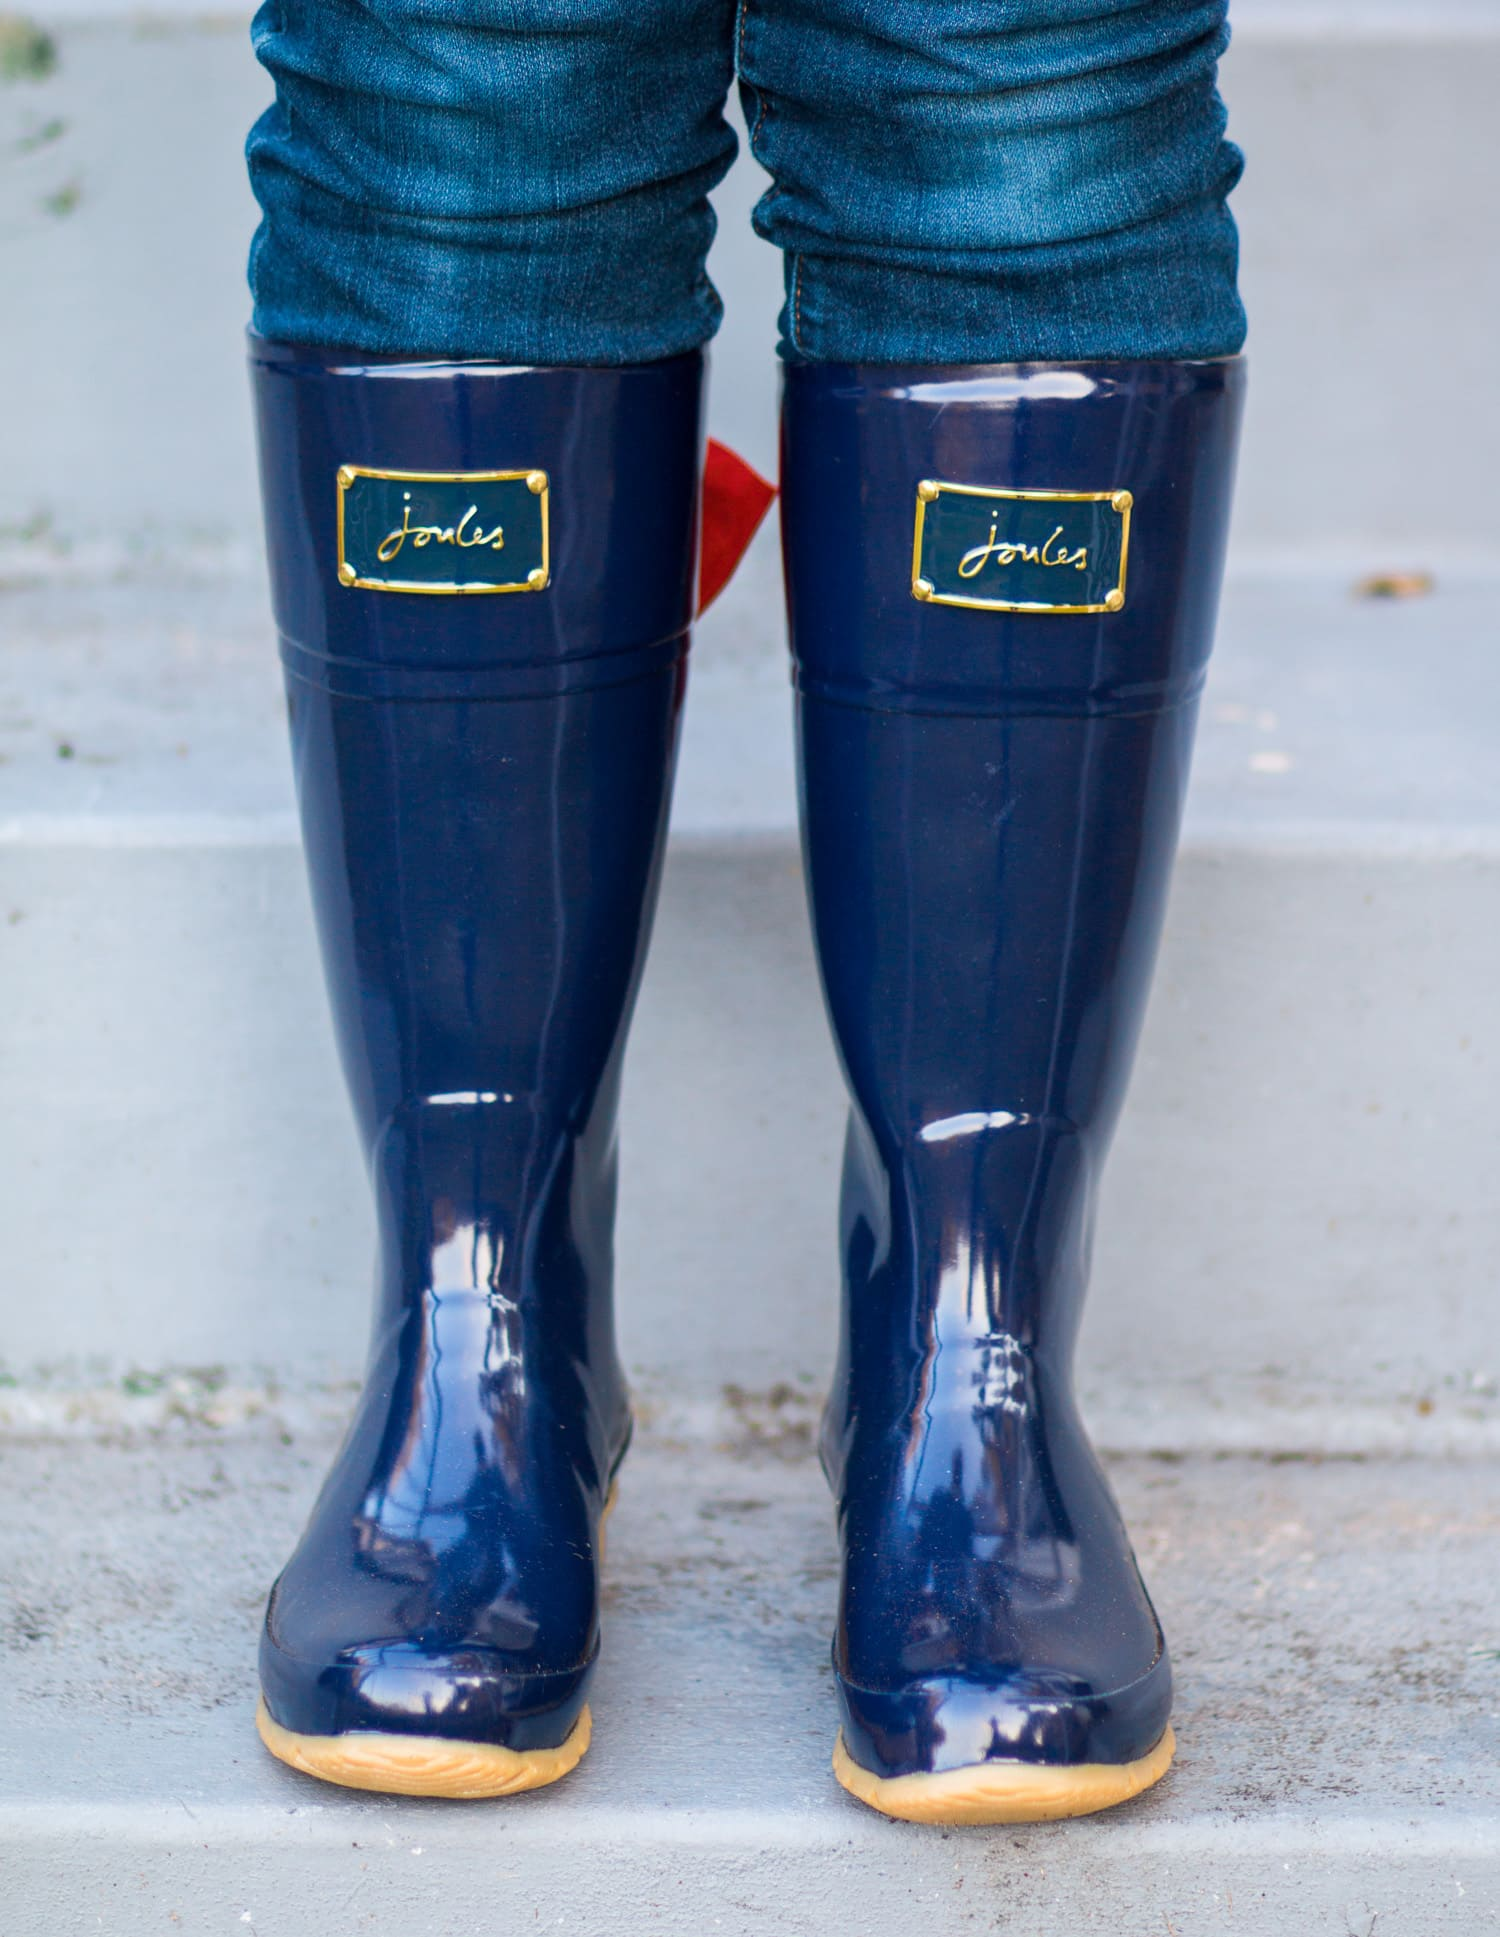 joules-evedon-rainboots-navy-red-bow-6566